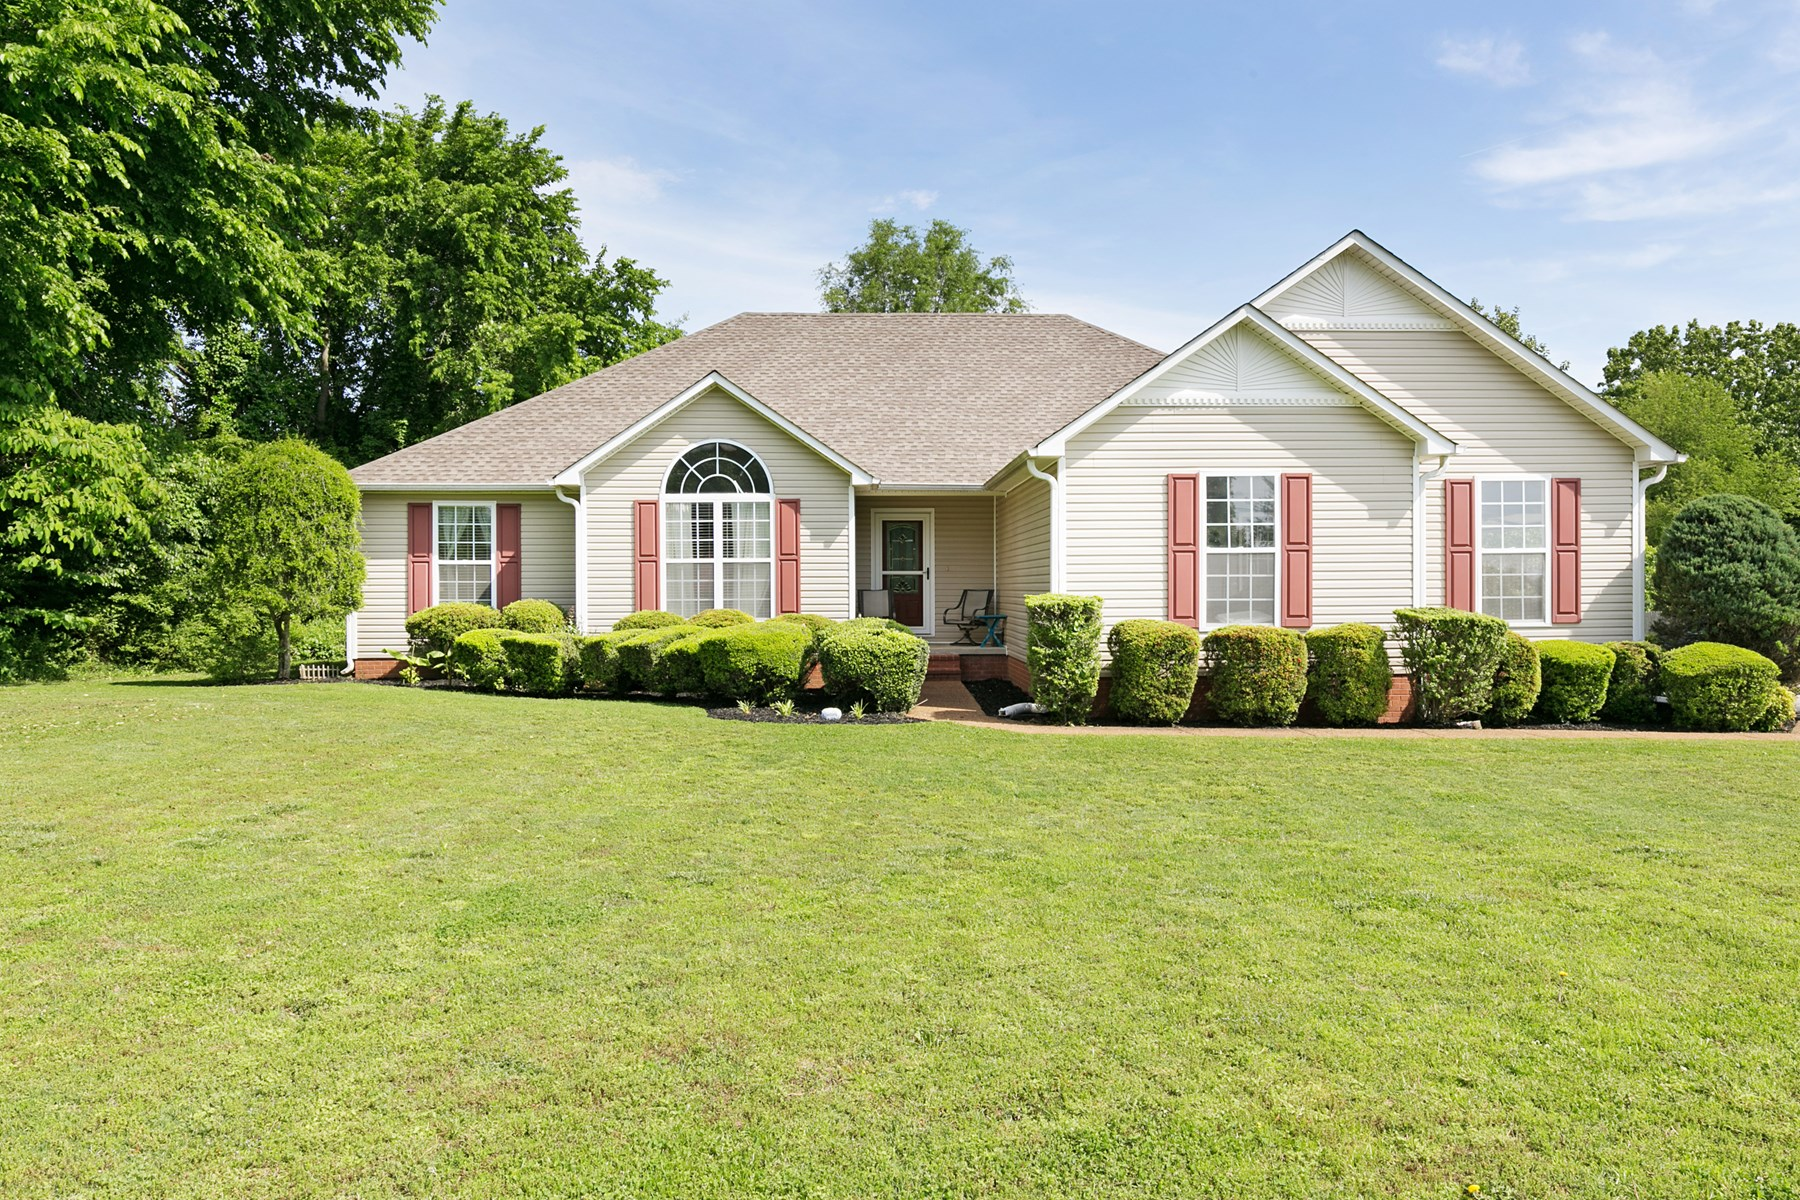 3BR / 2BA Home For Sale in Milan, TN - Over 2000 Sq. Ft